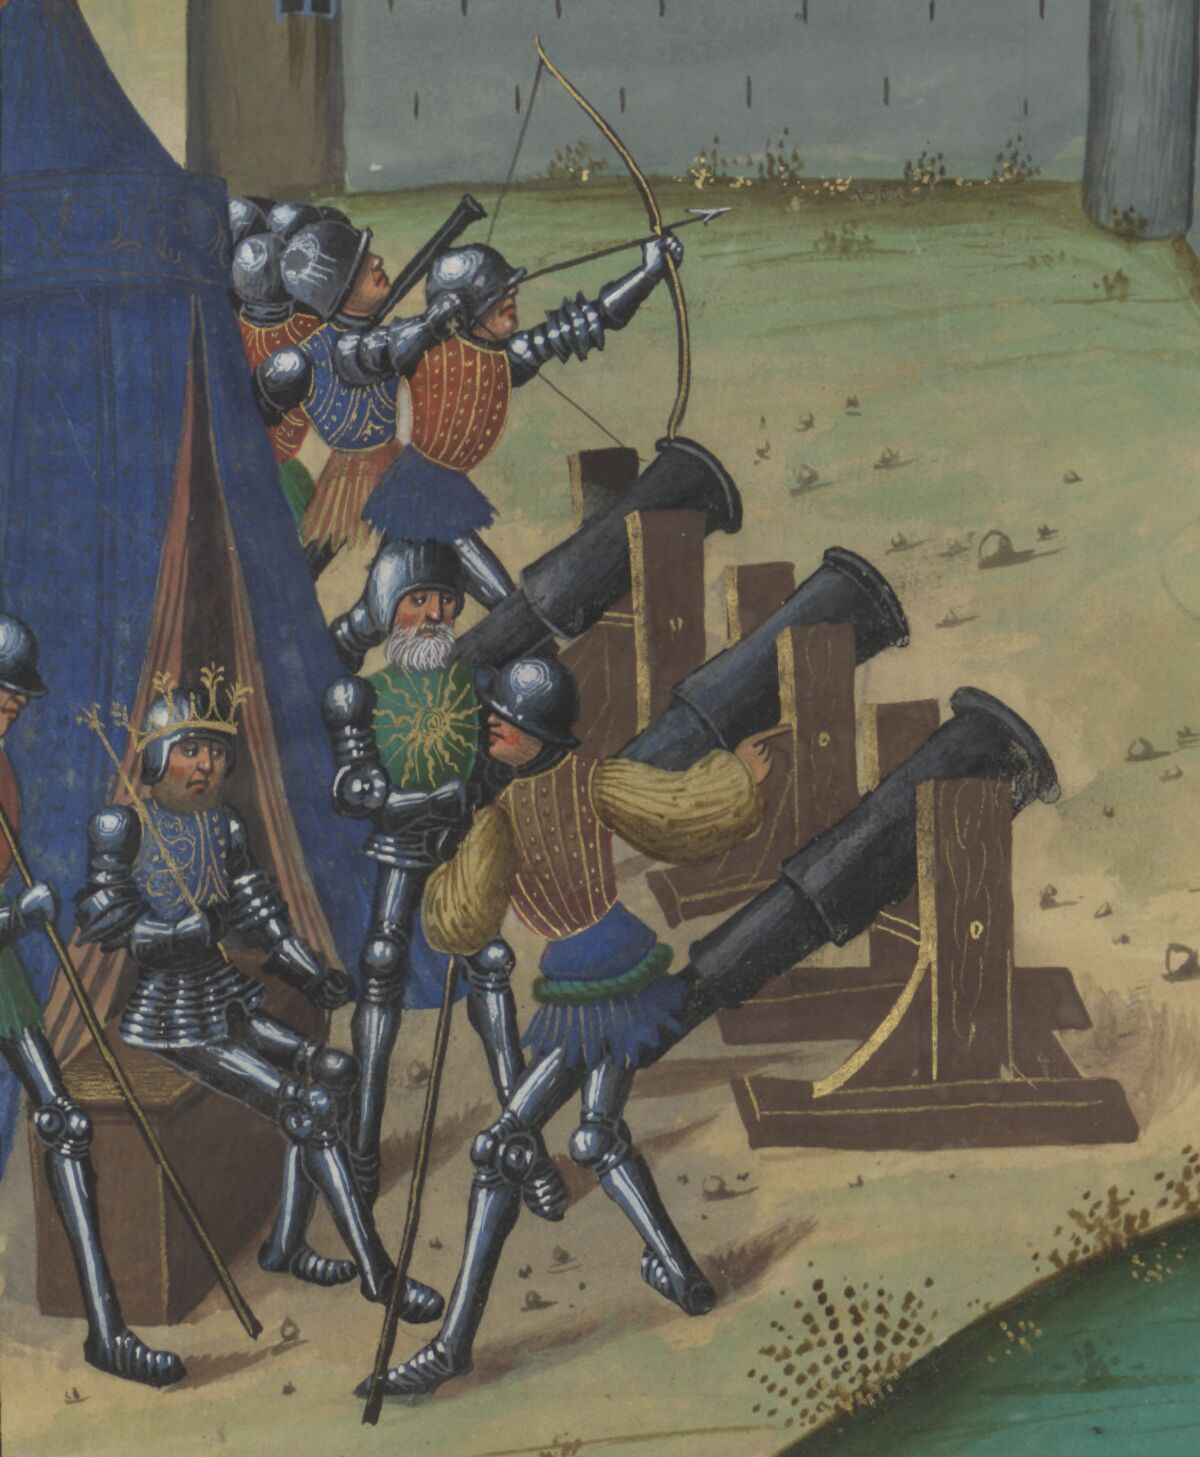 Siege warfare